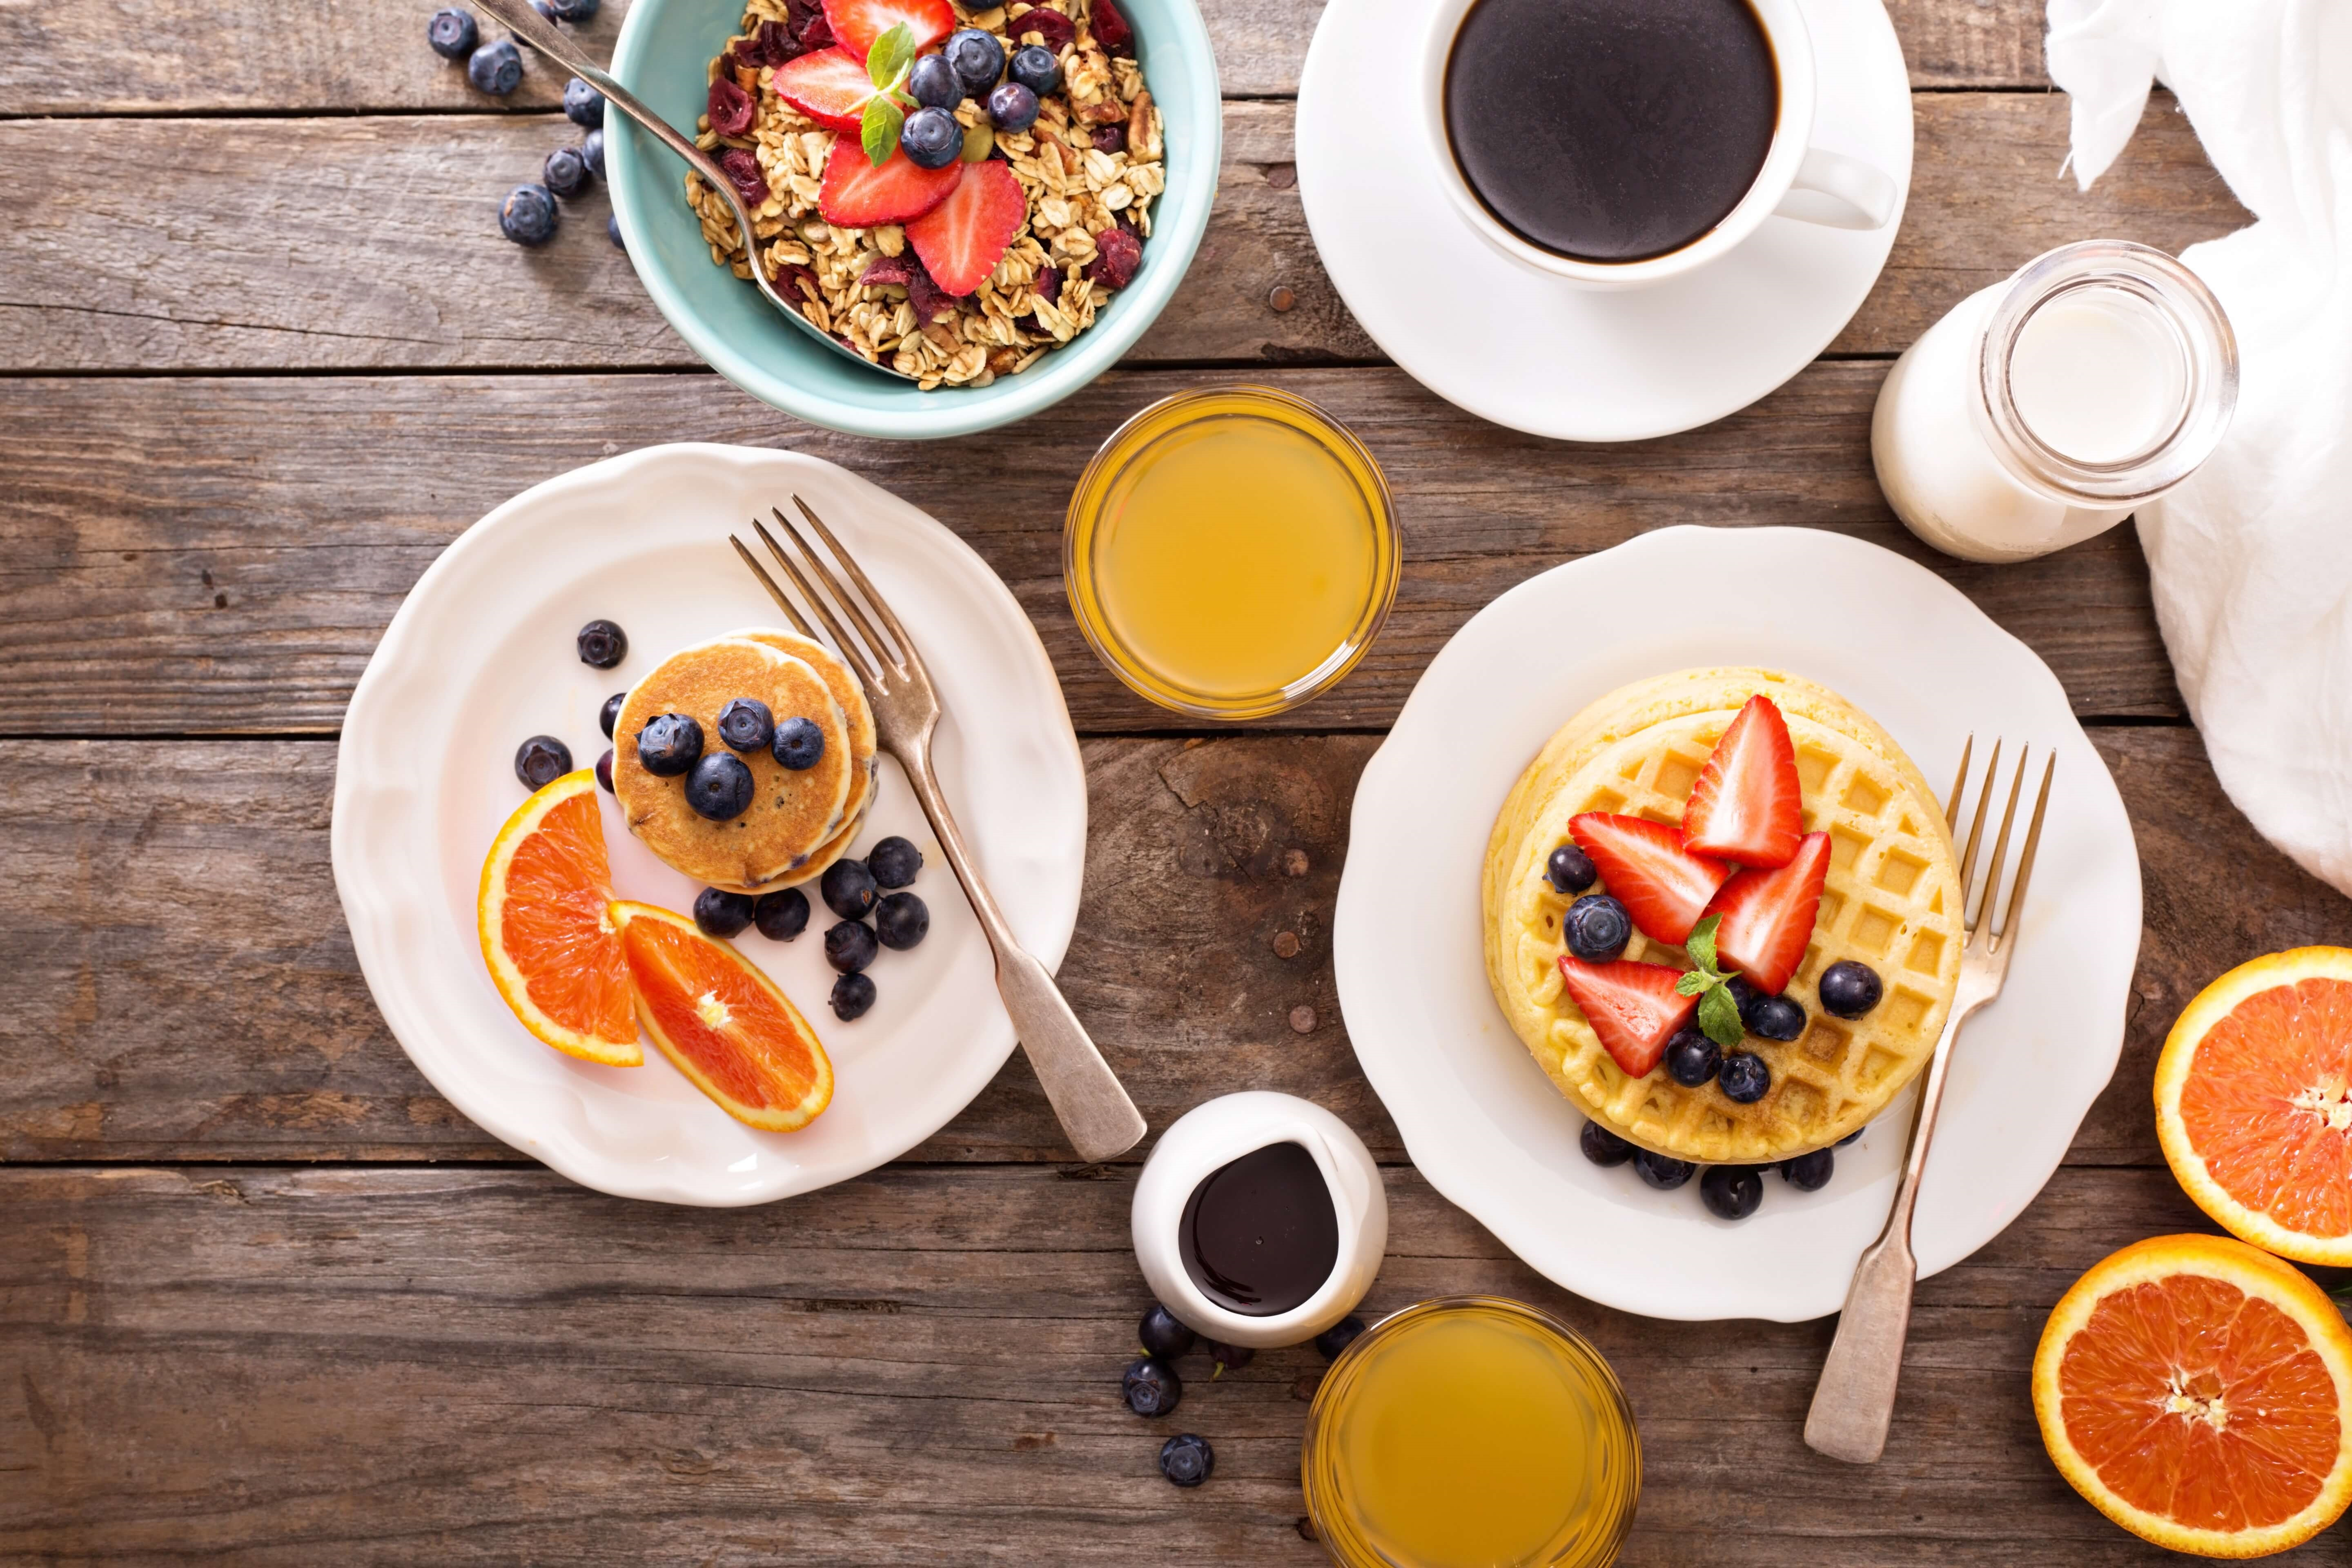 Breakfast ideas kids can make themselves familyeducation